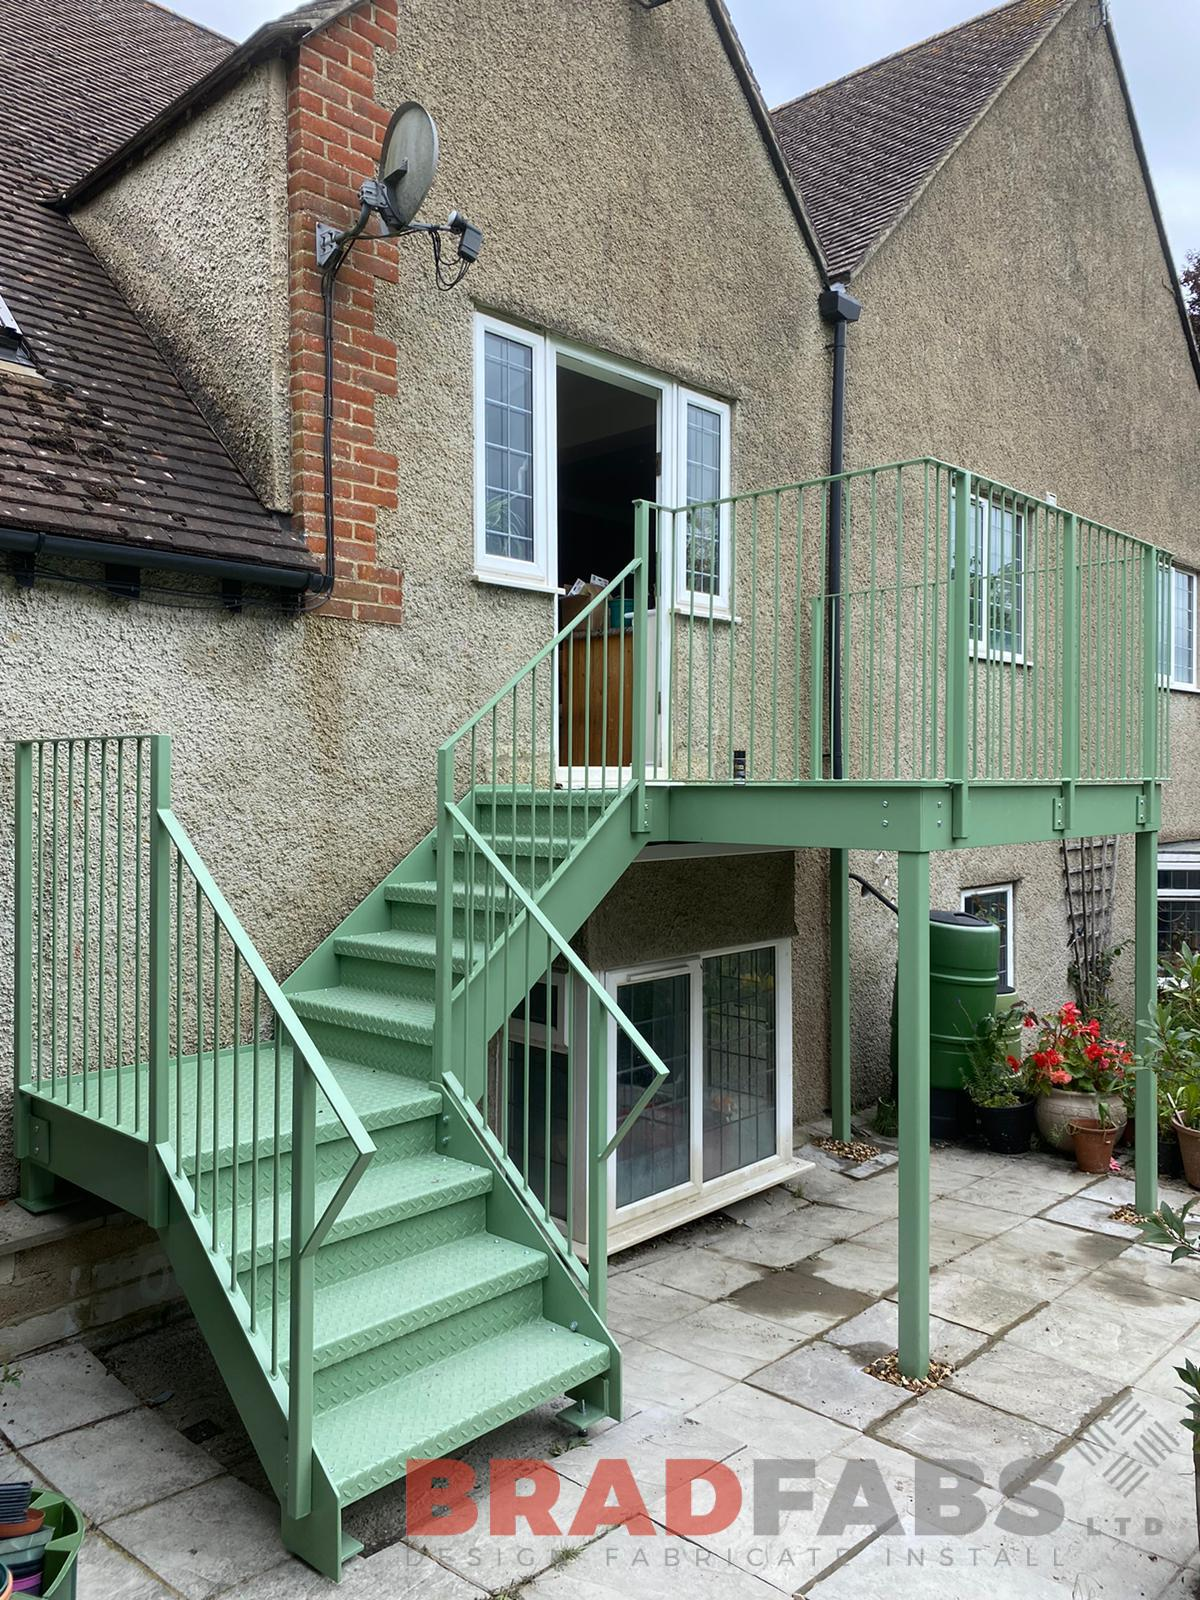 Bradfabs, straight staircase with balcony landing, steelwork, mild steel staircase, galvanised staircase, domestic property staircase, external staircase